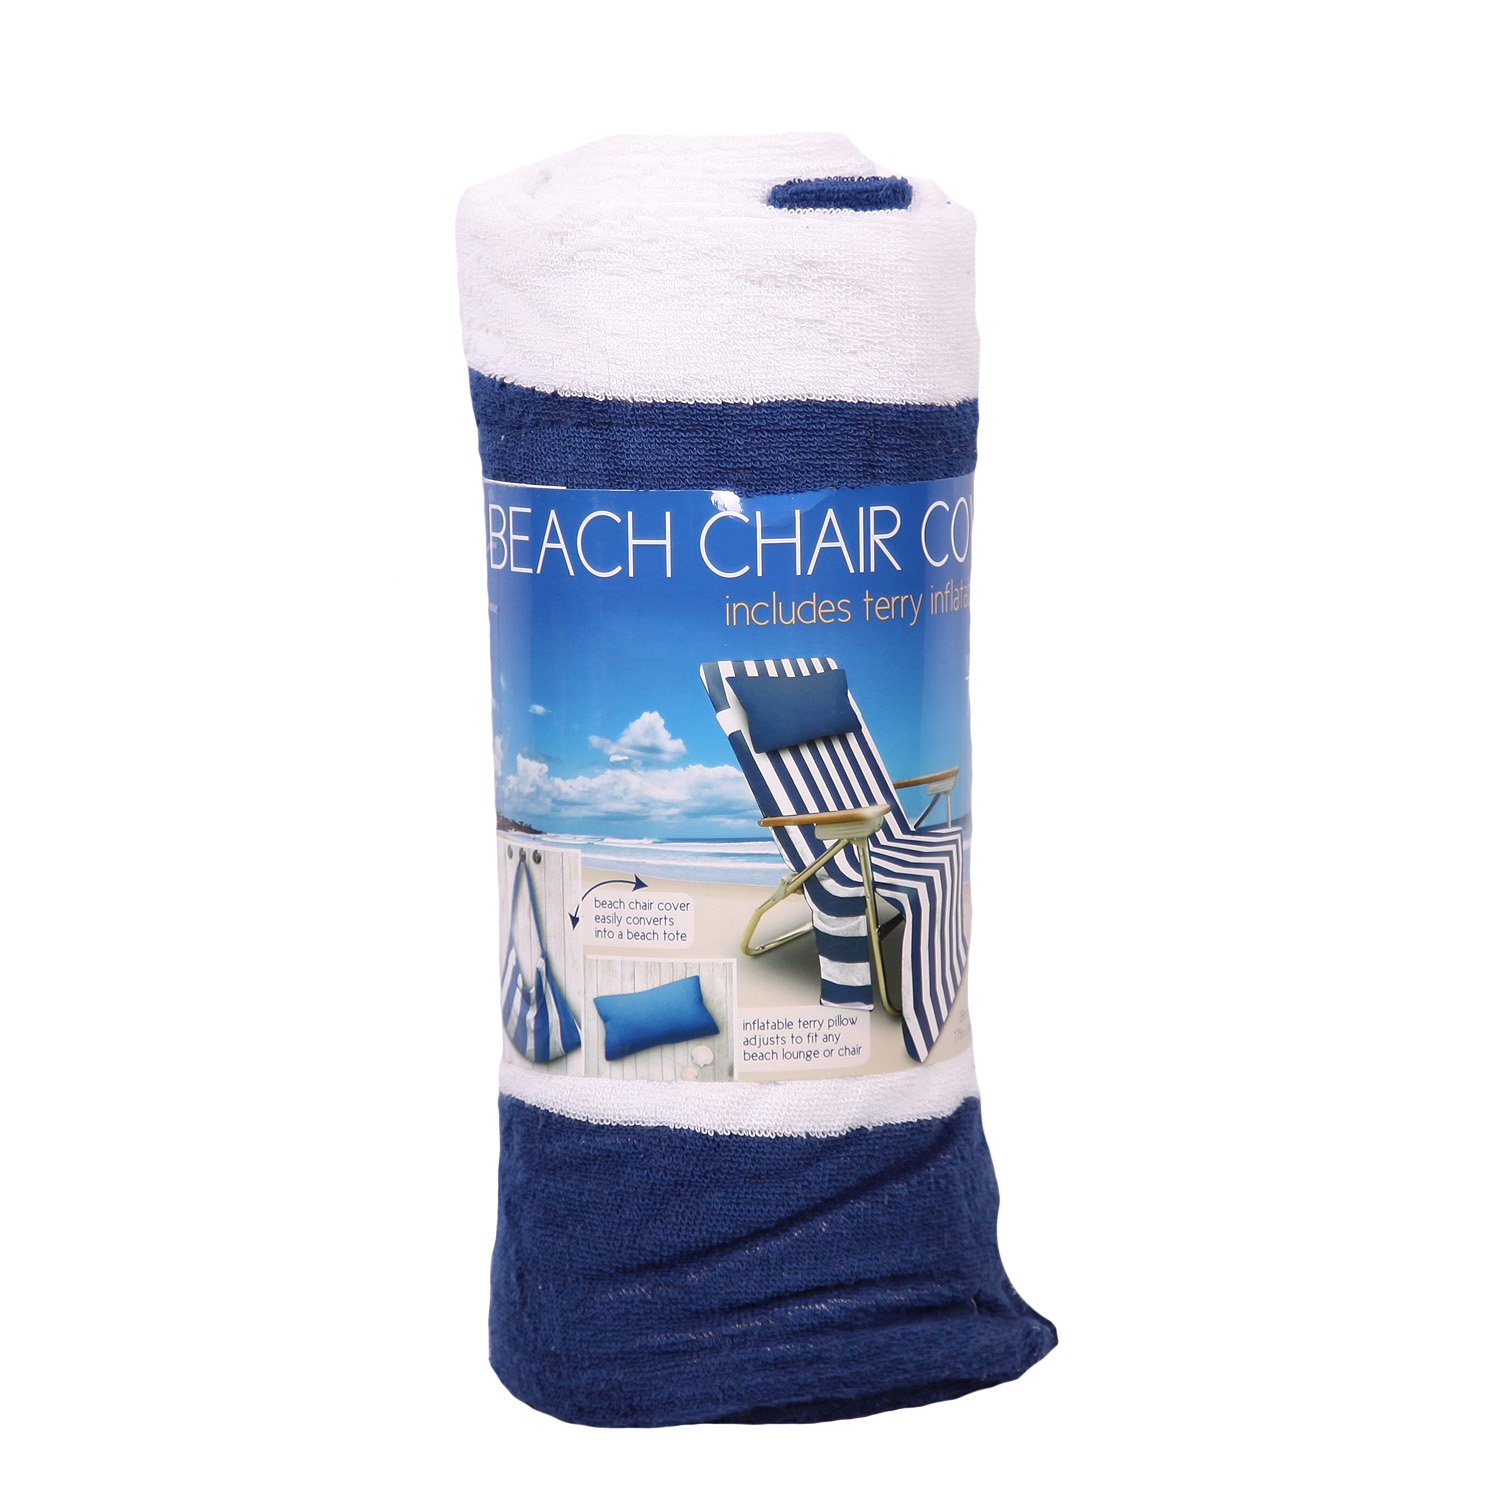 Amazing Amazon.com : 100% Cotton Terry Beach Chair Cover With Inflatable Terry  Pillow   Blue U0026 White Stripes : Patio Chaise Lounge Covers : Garden U0026  Outdoor